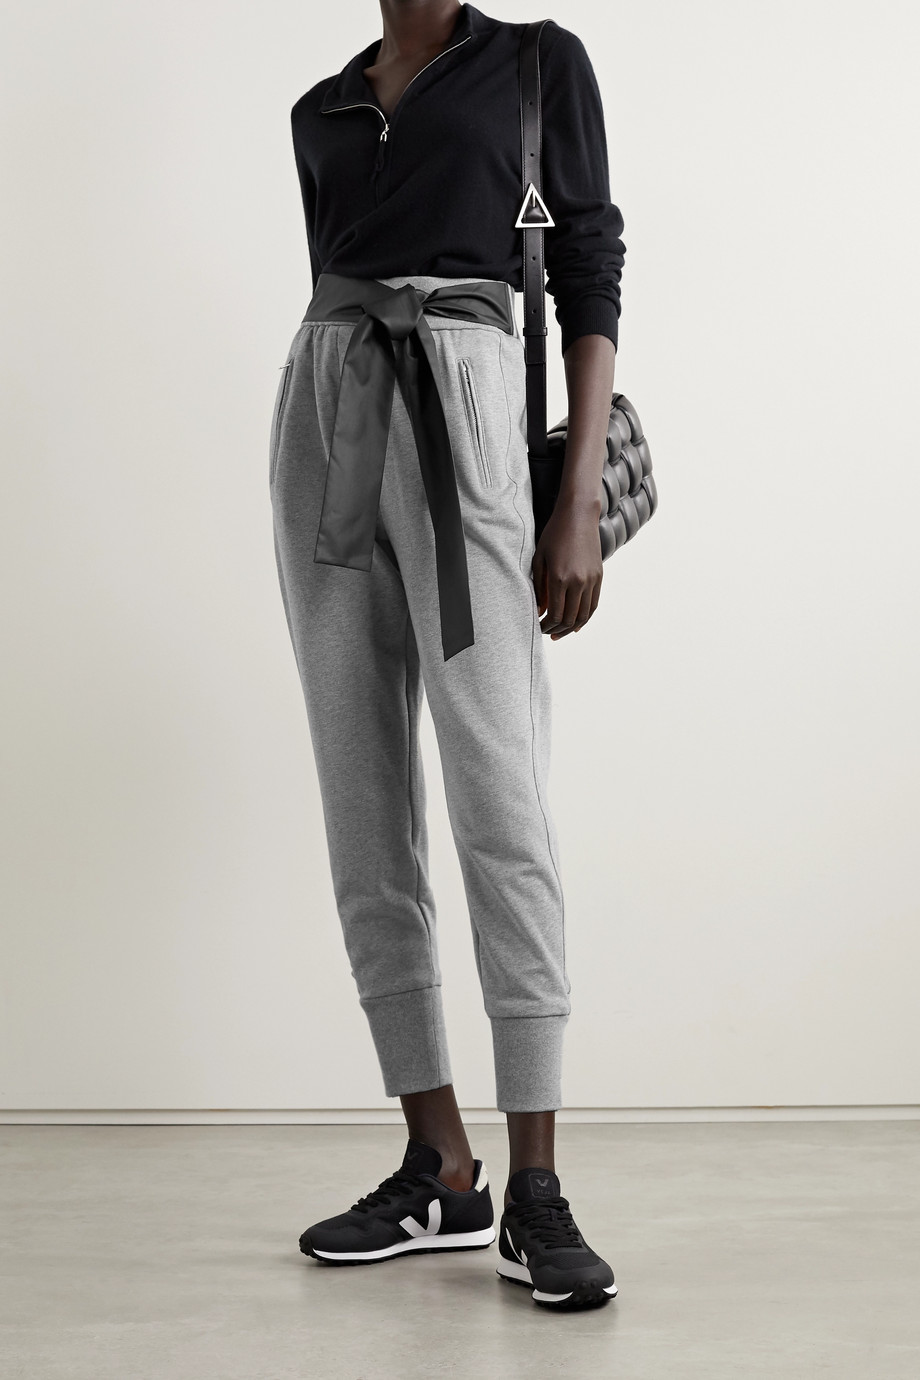 3.1 PHILLIP LIM Satin-trimmed cotton-jersey track pants